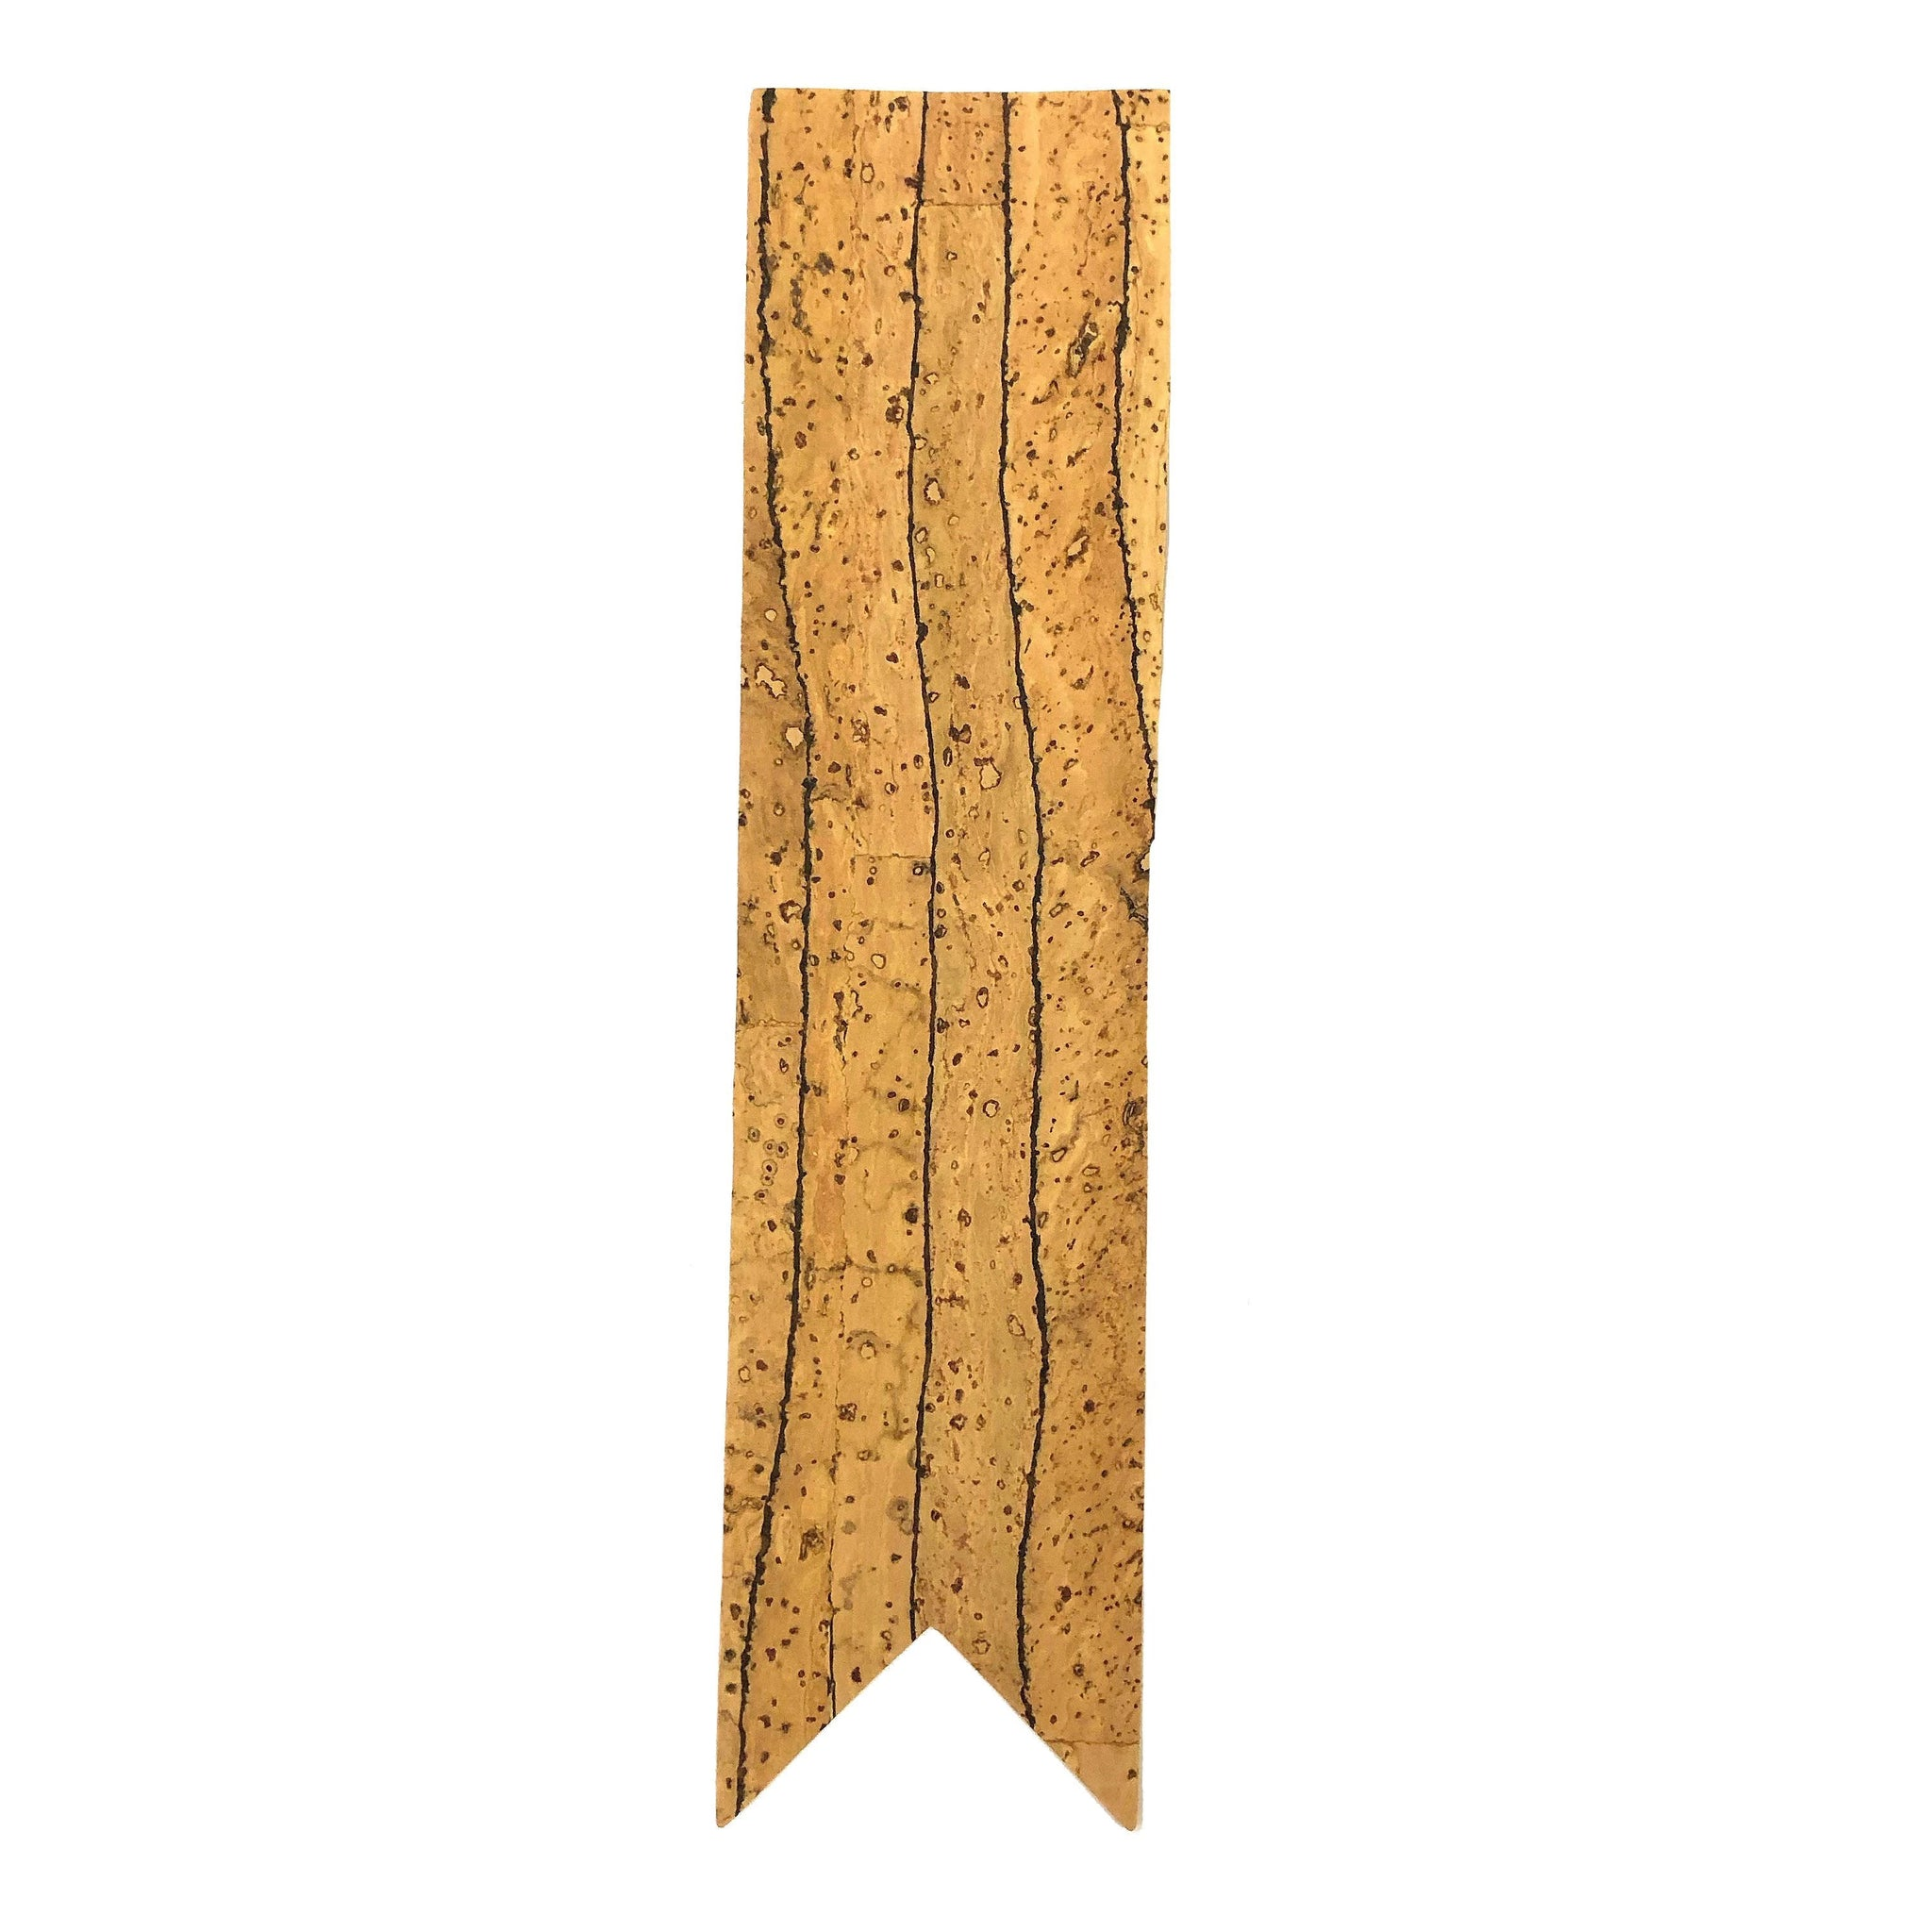 queork cork bookmark tiger